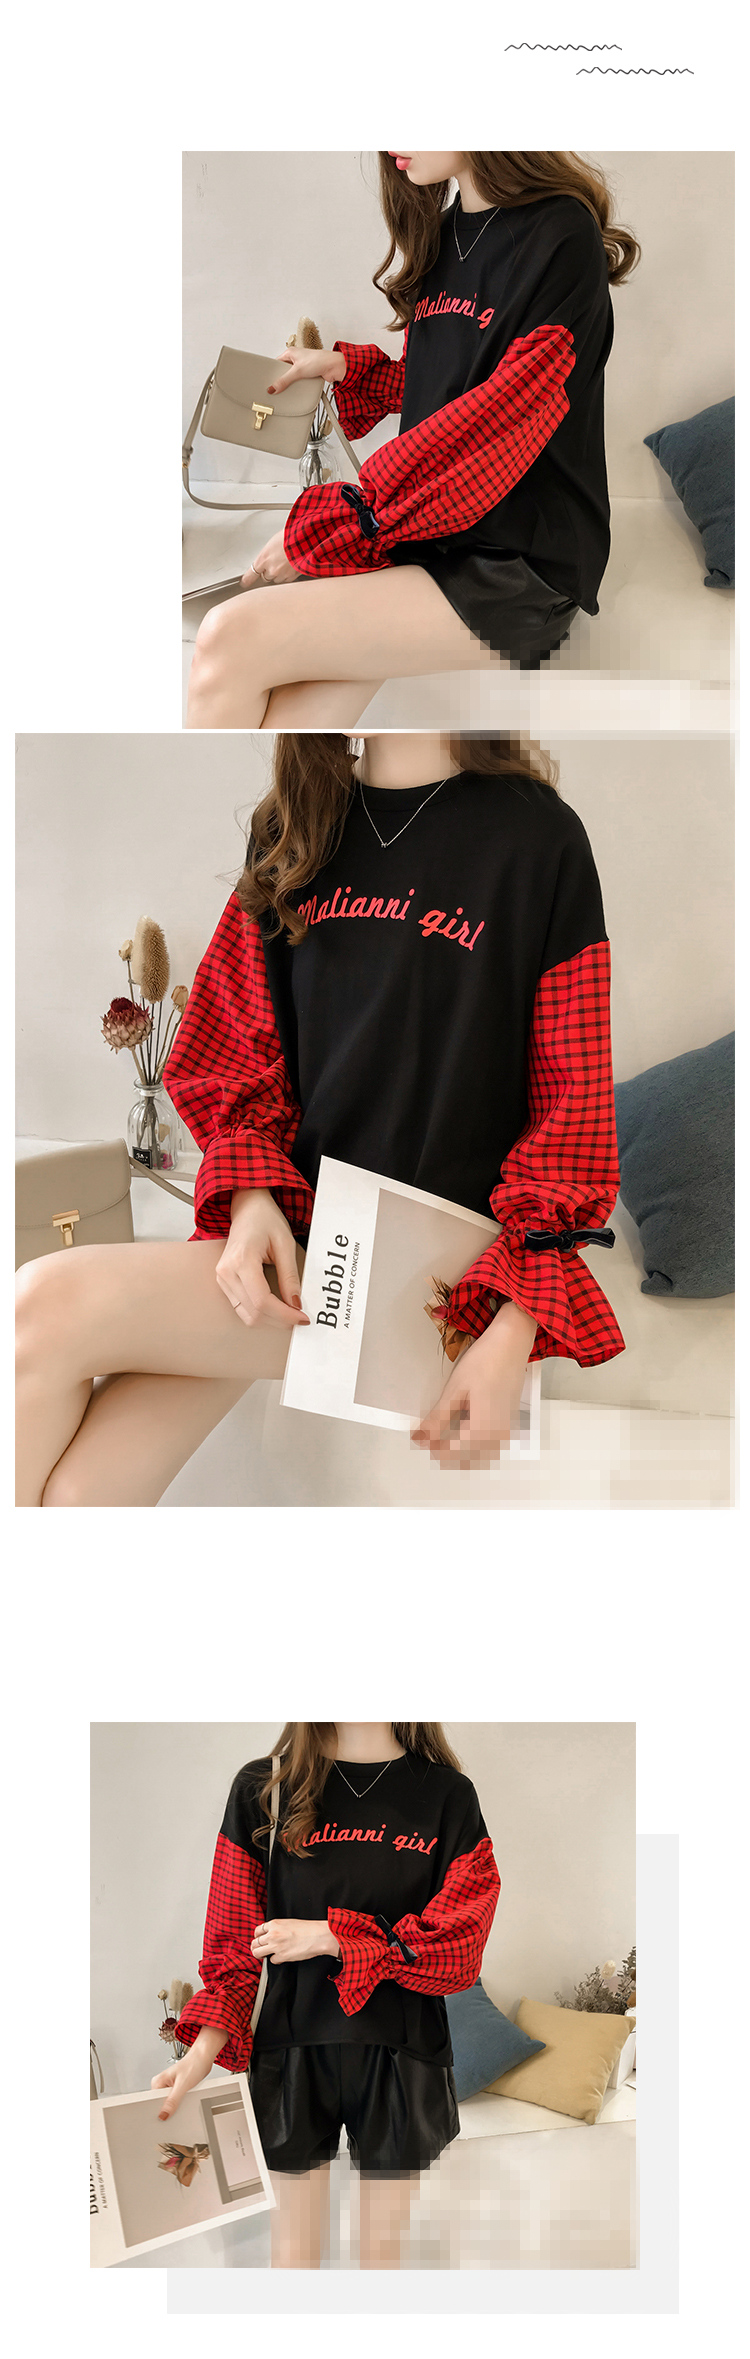 M-4xl Plus Size Cotton Casual T-shirts Women Plaid Patchwork Flare Sleeve O-neck Tshirts Harajuku Fake Two Piece Loose Tees Tops 17 Online shopping Bangladesh